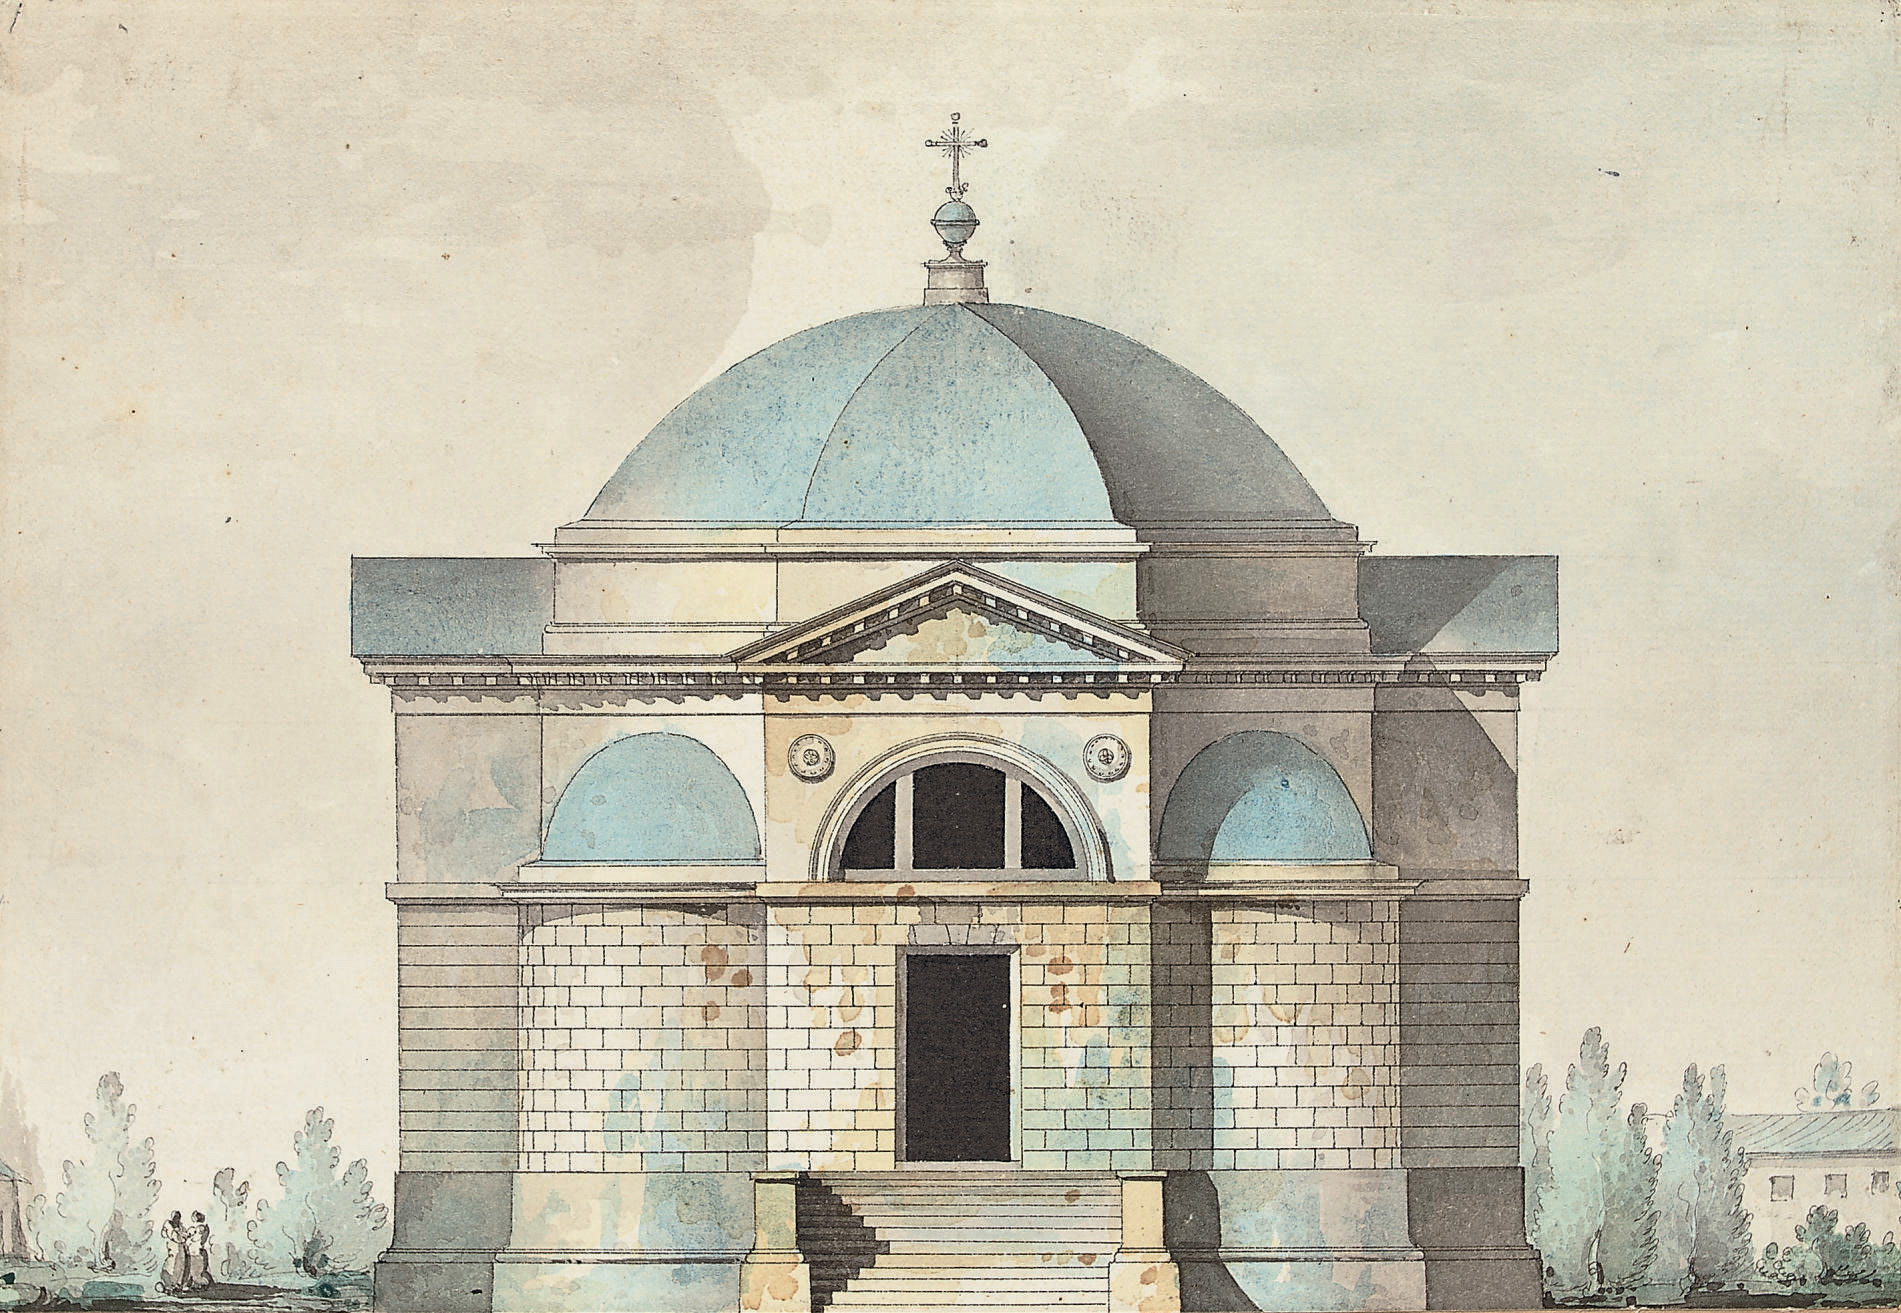 Elevation of the church of the cemetary of Kazan, Tsarskoye Selo